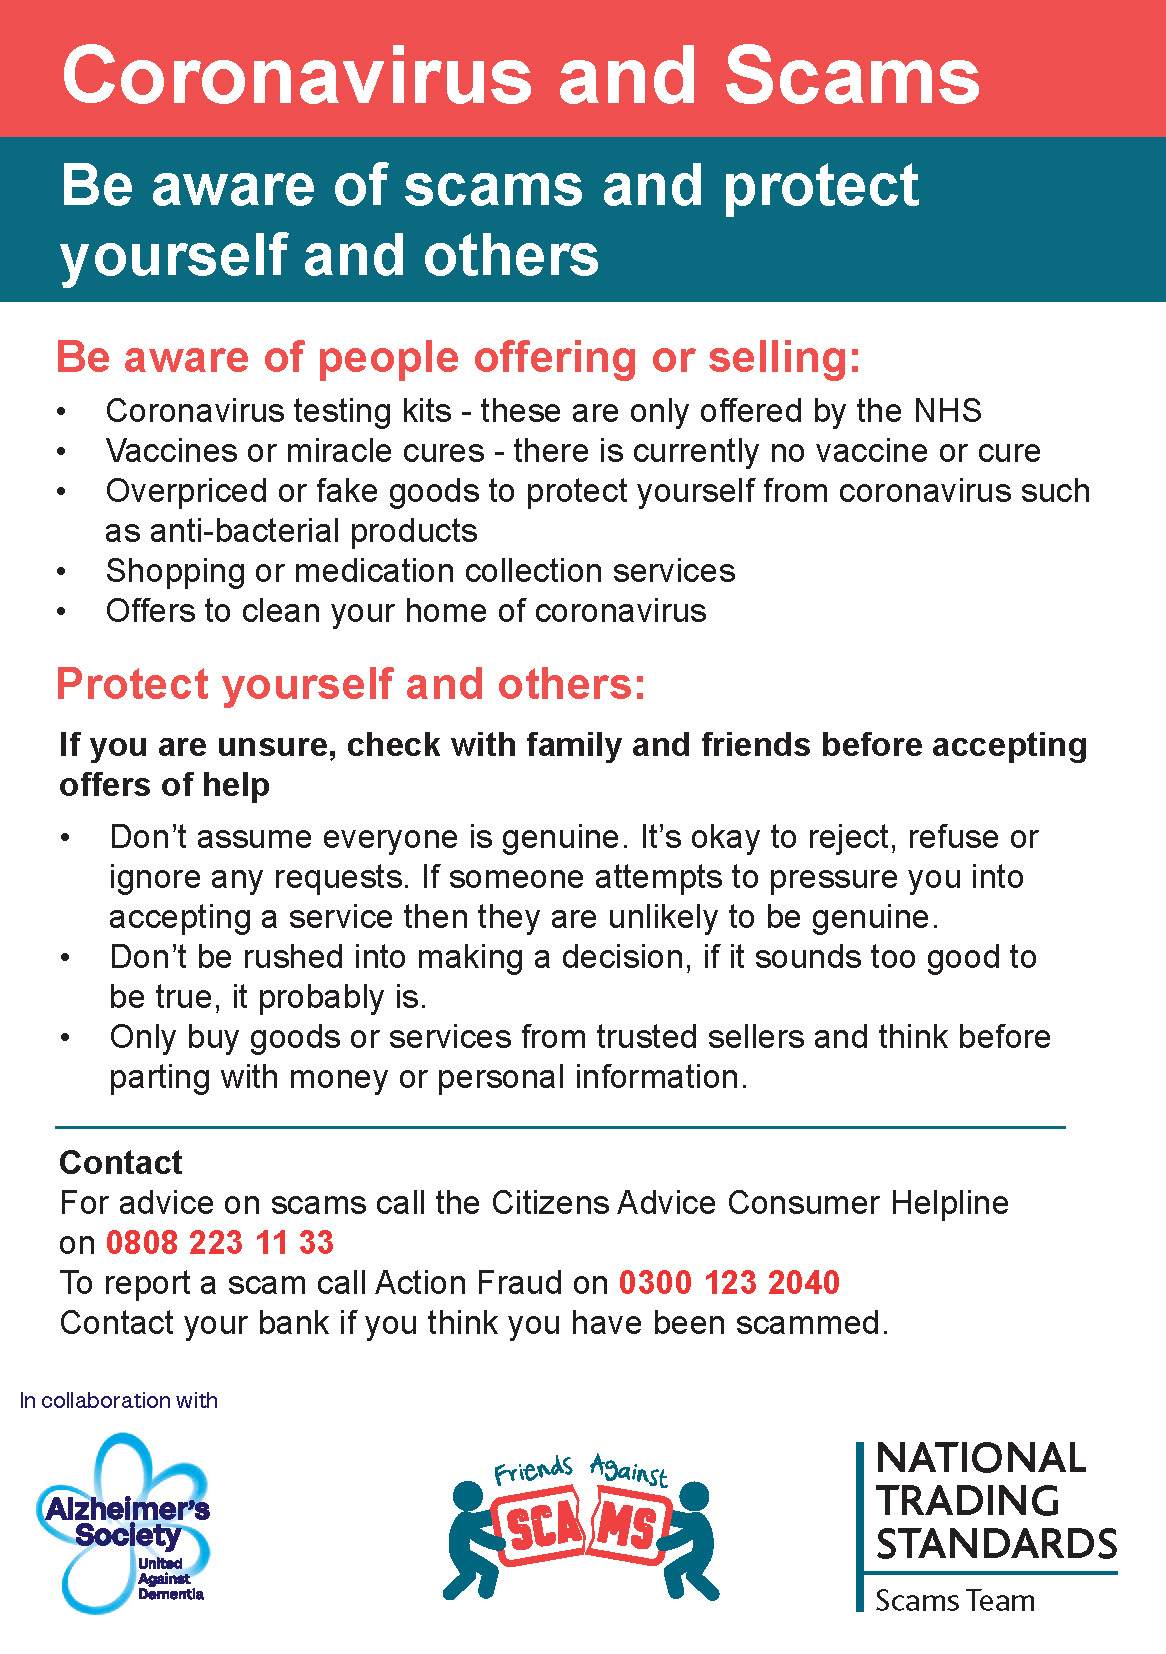 Be aware of scams and protect yourself and others. Contact Action Fraud on 0300 123 2040 to report a scam.